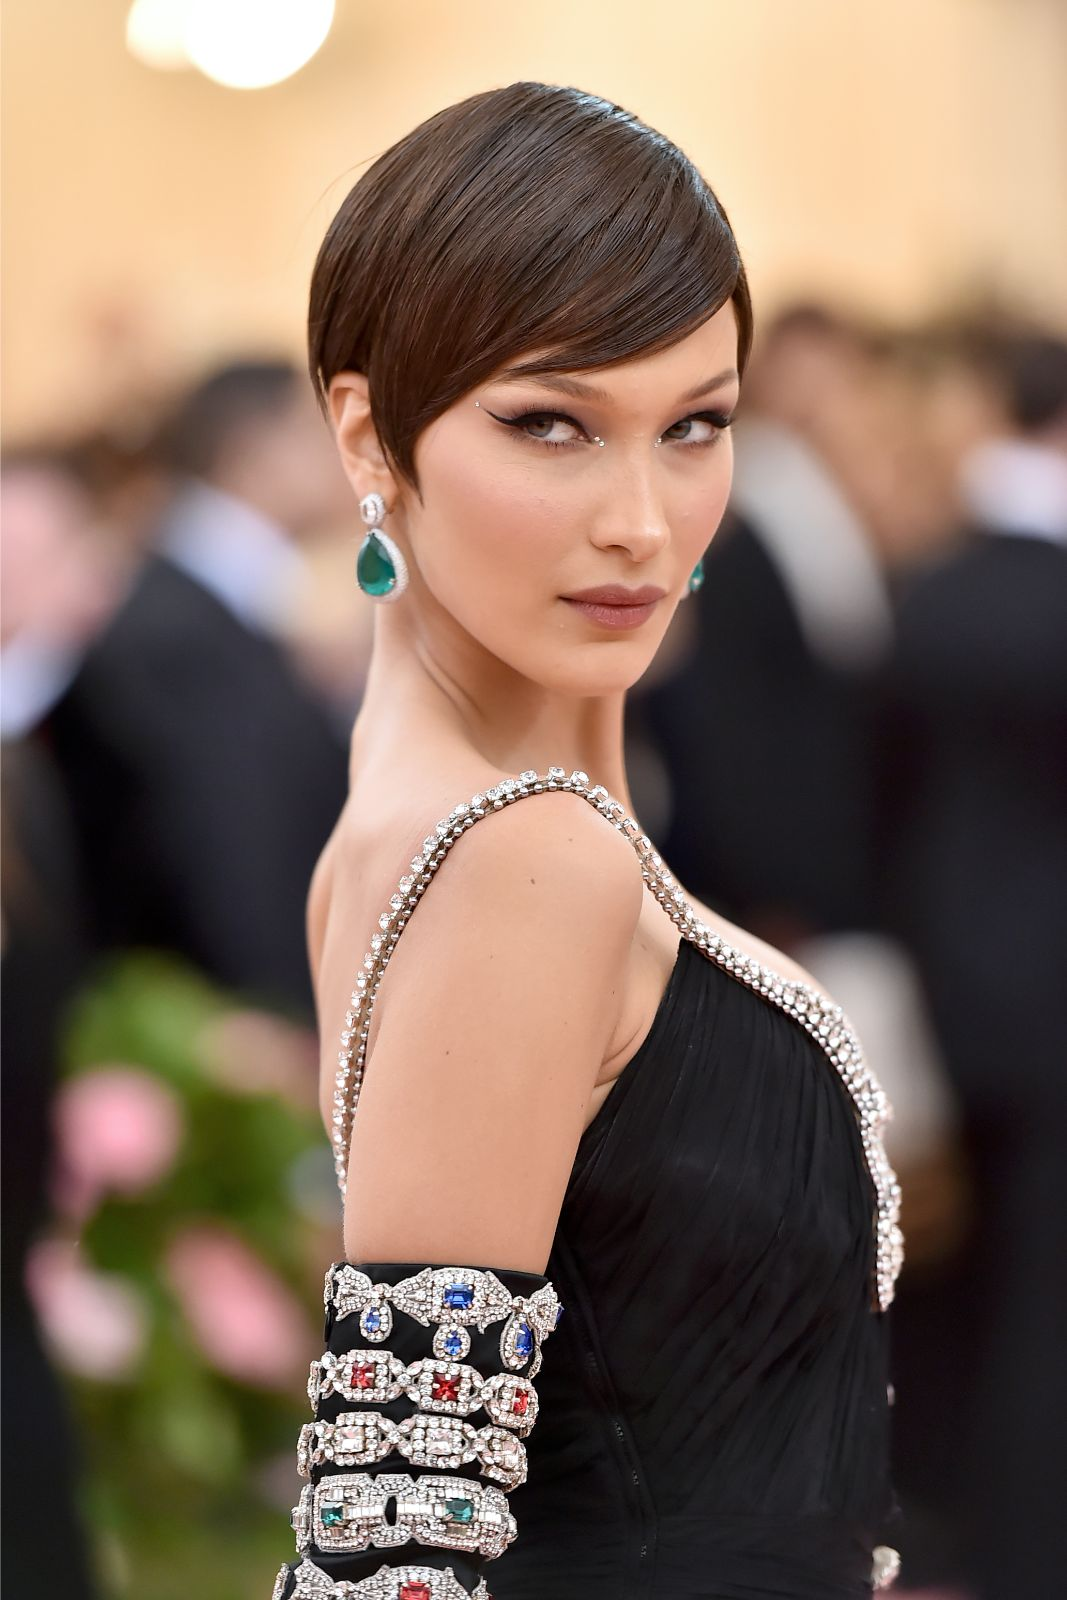 Bold-pixie-cut.-1 70+ Outdated Hairstyle Ideas Coming Back in 2021